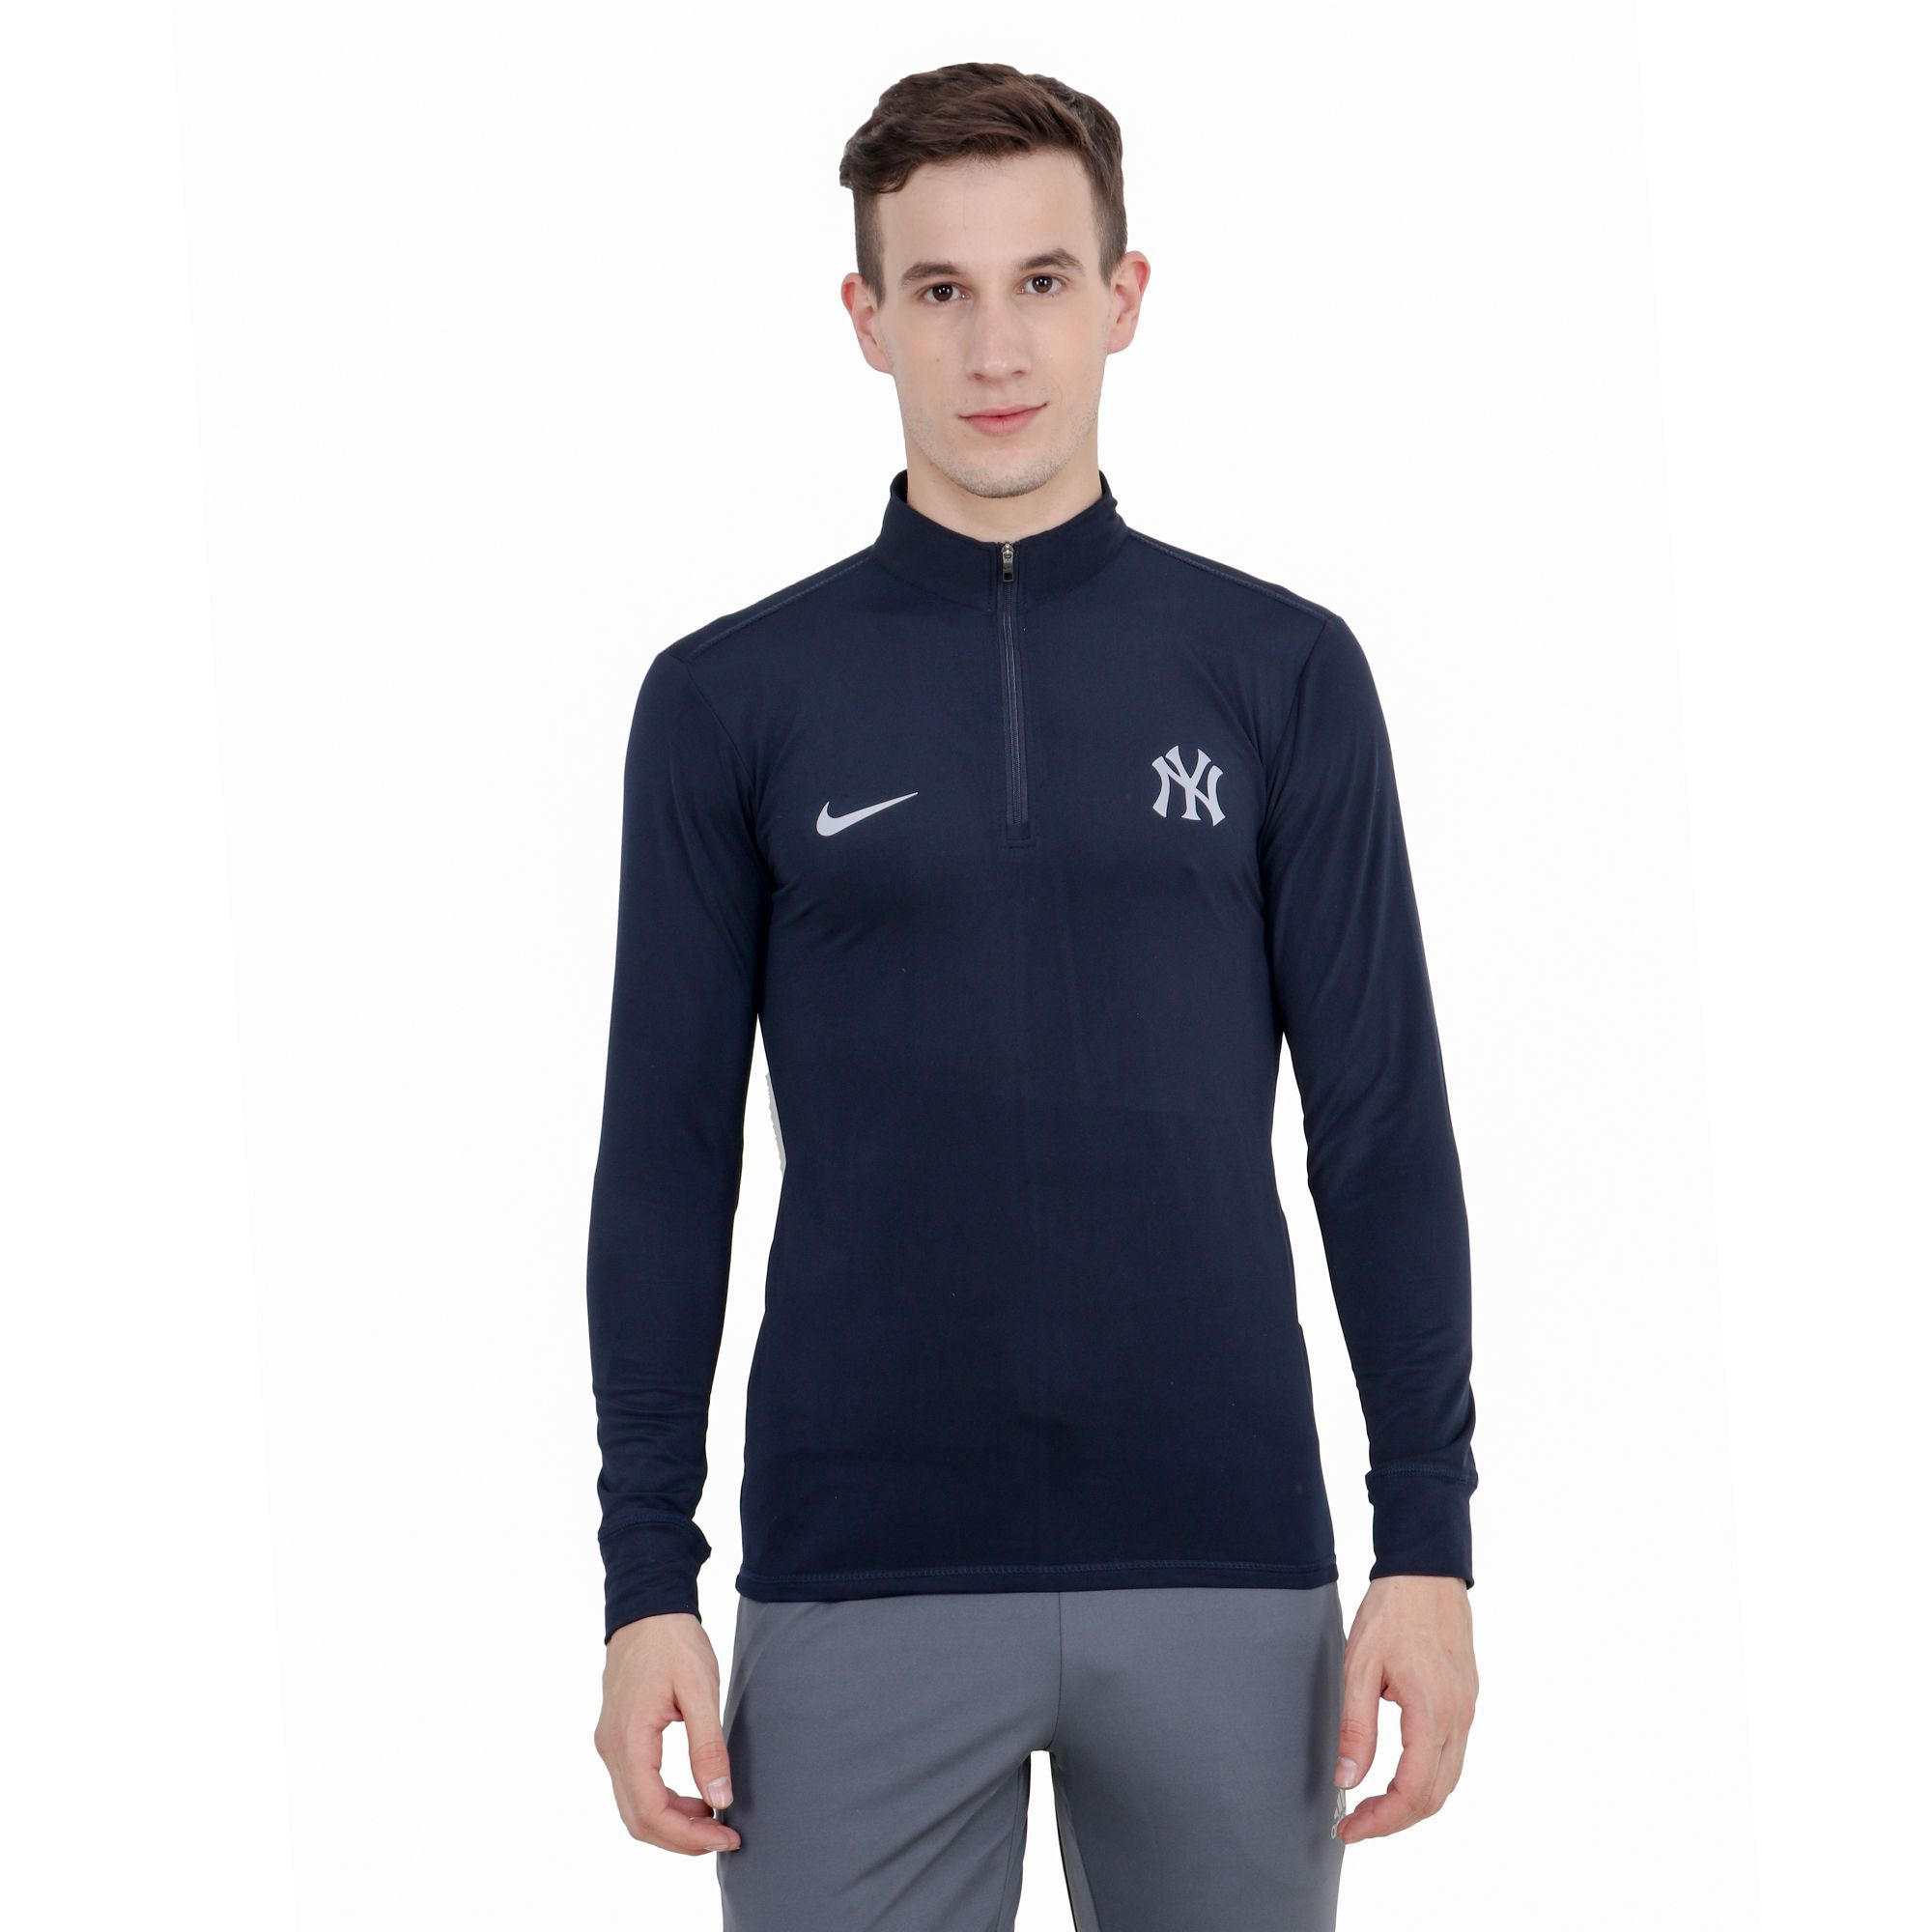 cbfe13e2f1ffc2 Nike Navy Polyester Lycra T-Shirt - Buy Nike Navy Polyester Lycra T-Shirt  Online at Low Price in India - Snapdeal